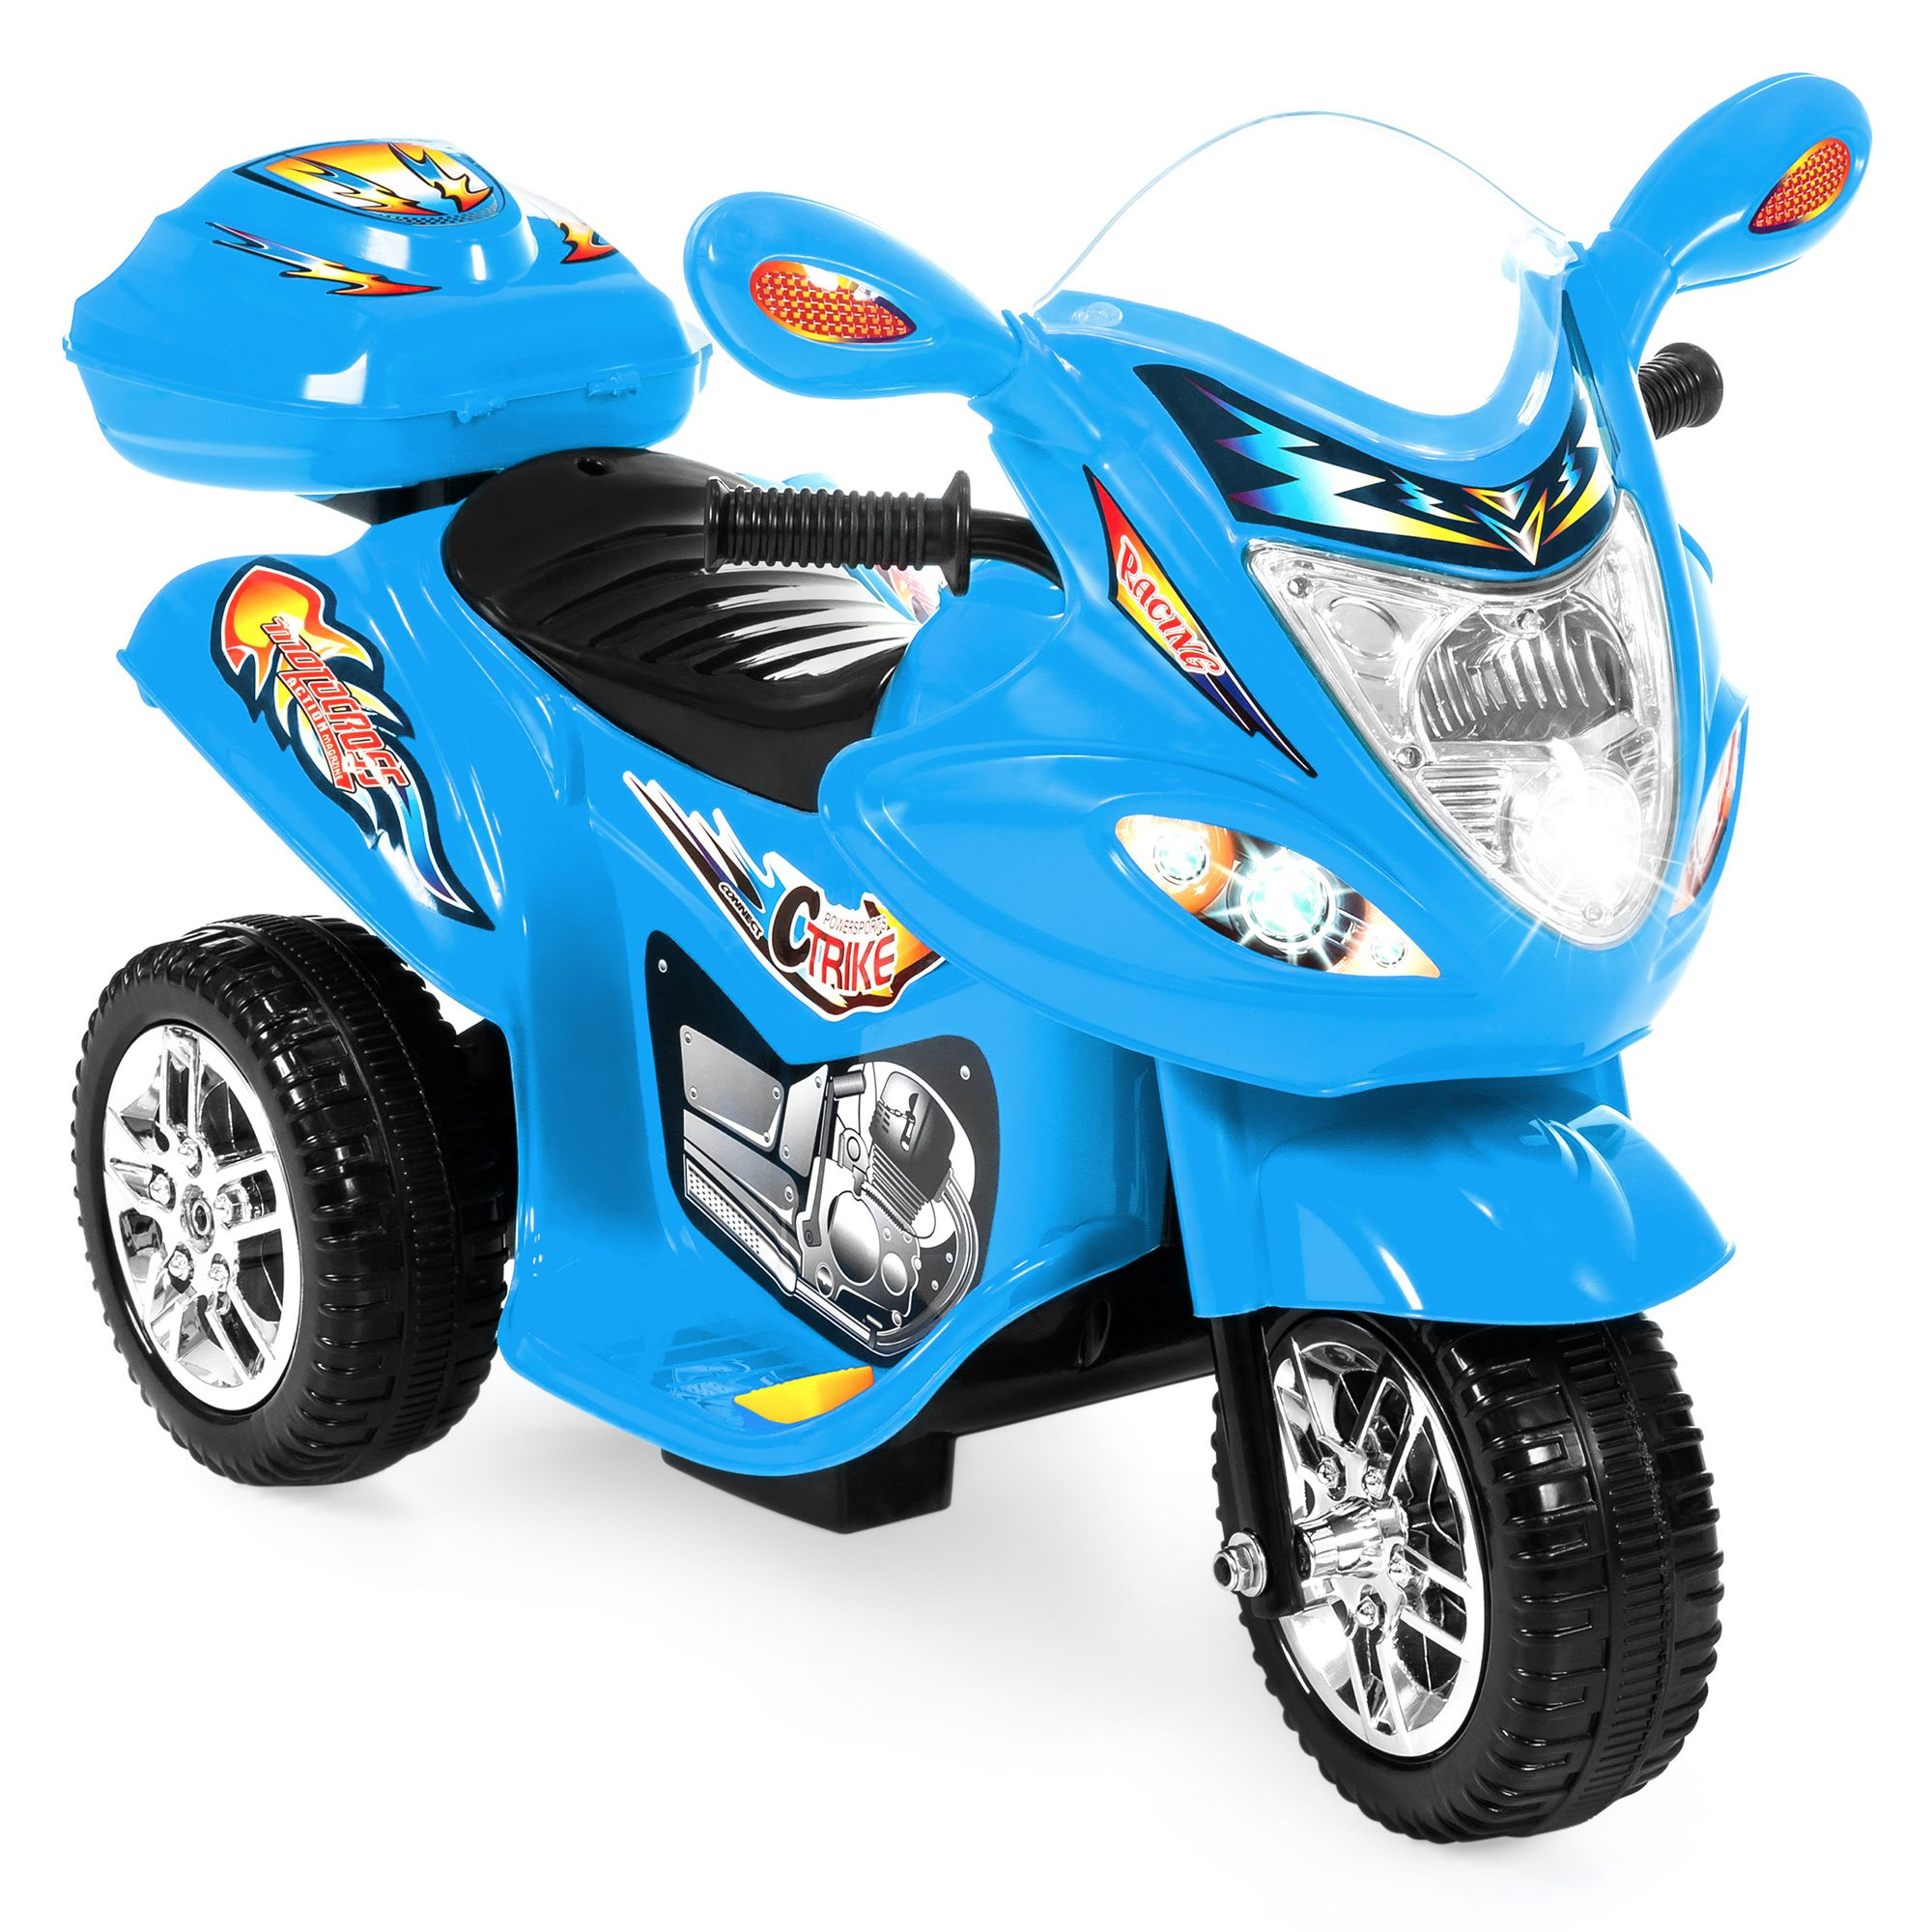 Best Choice Products Kids 6V Battery Powered 3 Wheel Ride on Motorcycle w/ Lights, Music, Horn - Blue